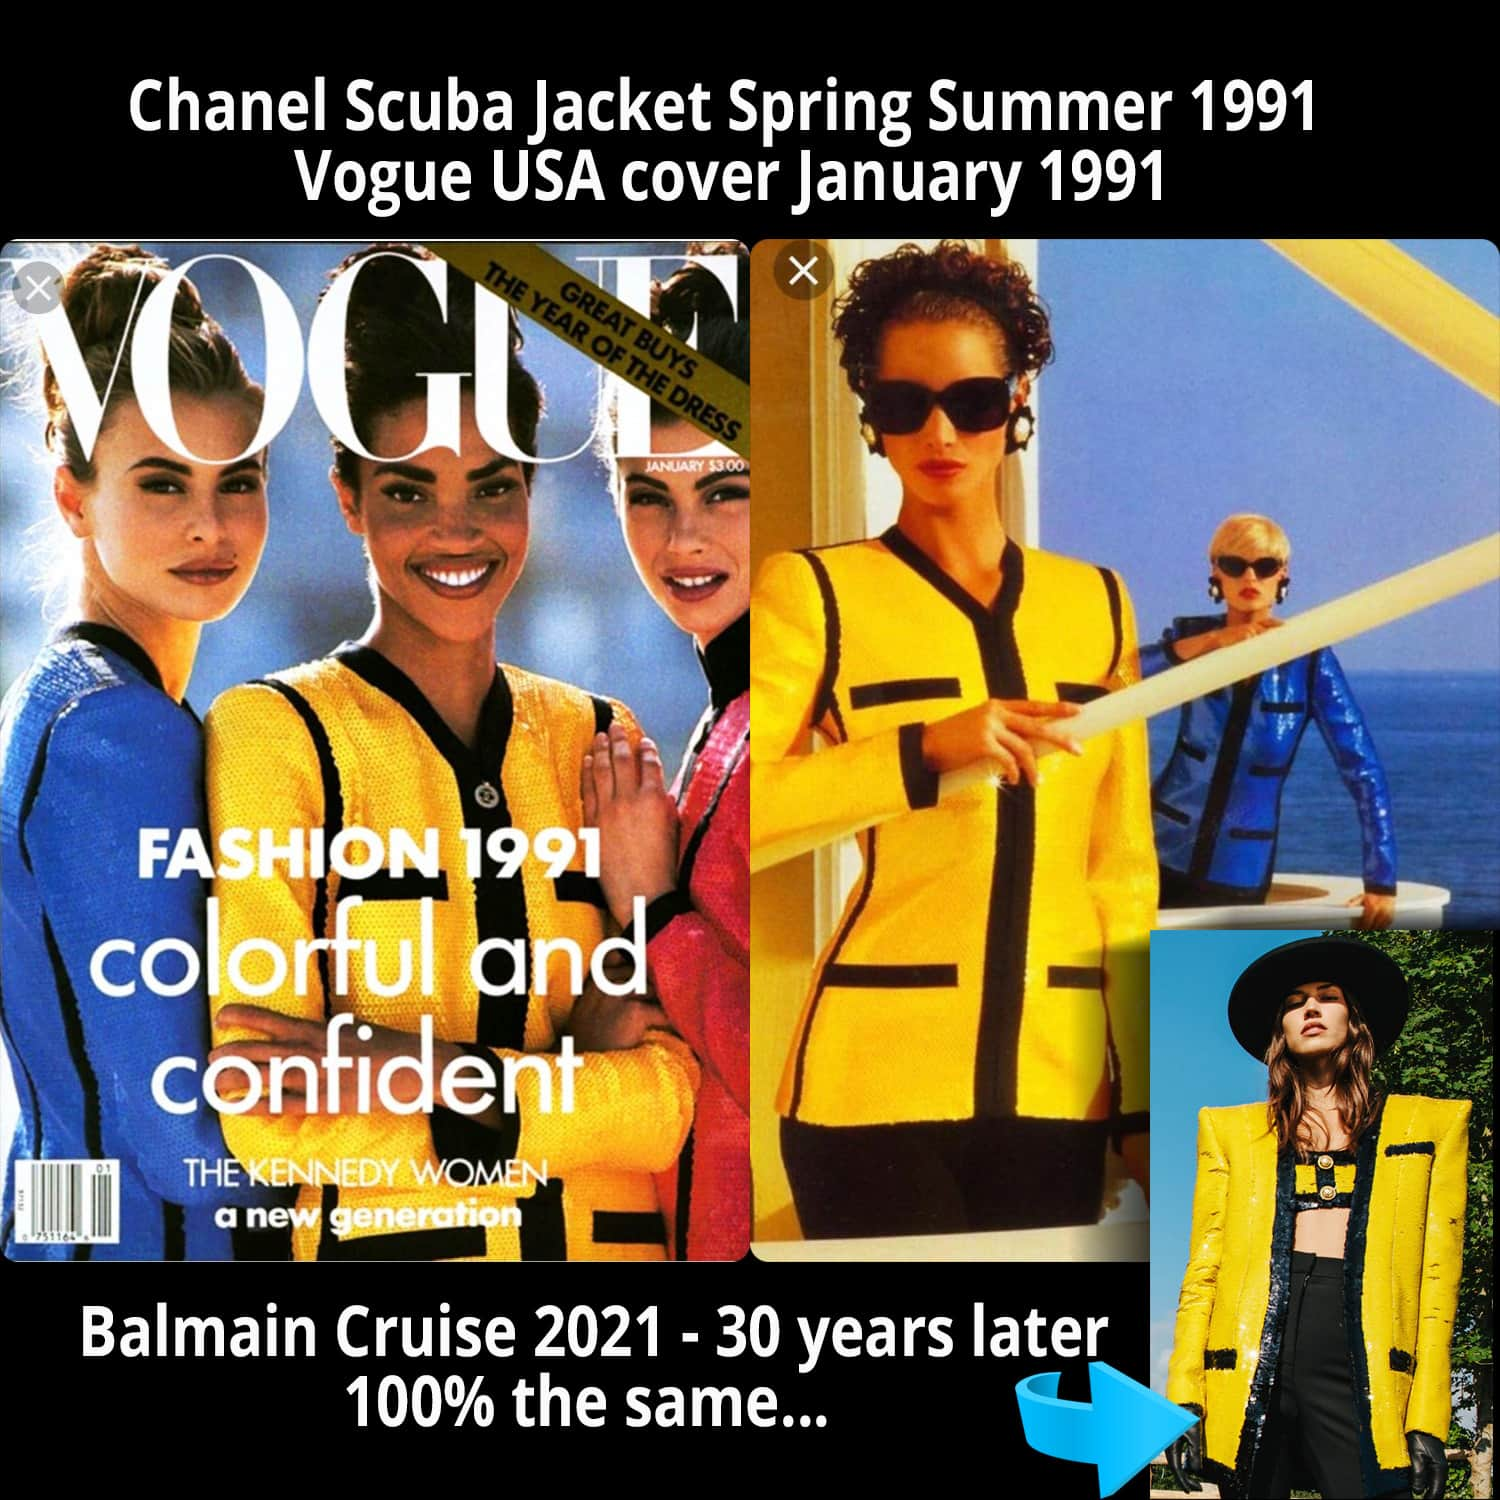 Balmain Cruise 2021 vs Chanel Yellow Sequin Scuba Jacket shown on Vogue Cover January 1991